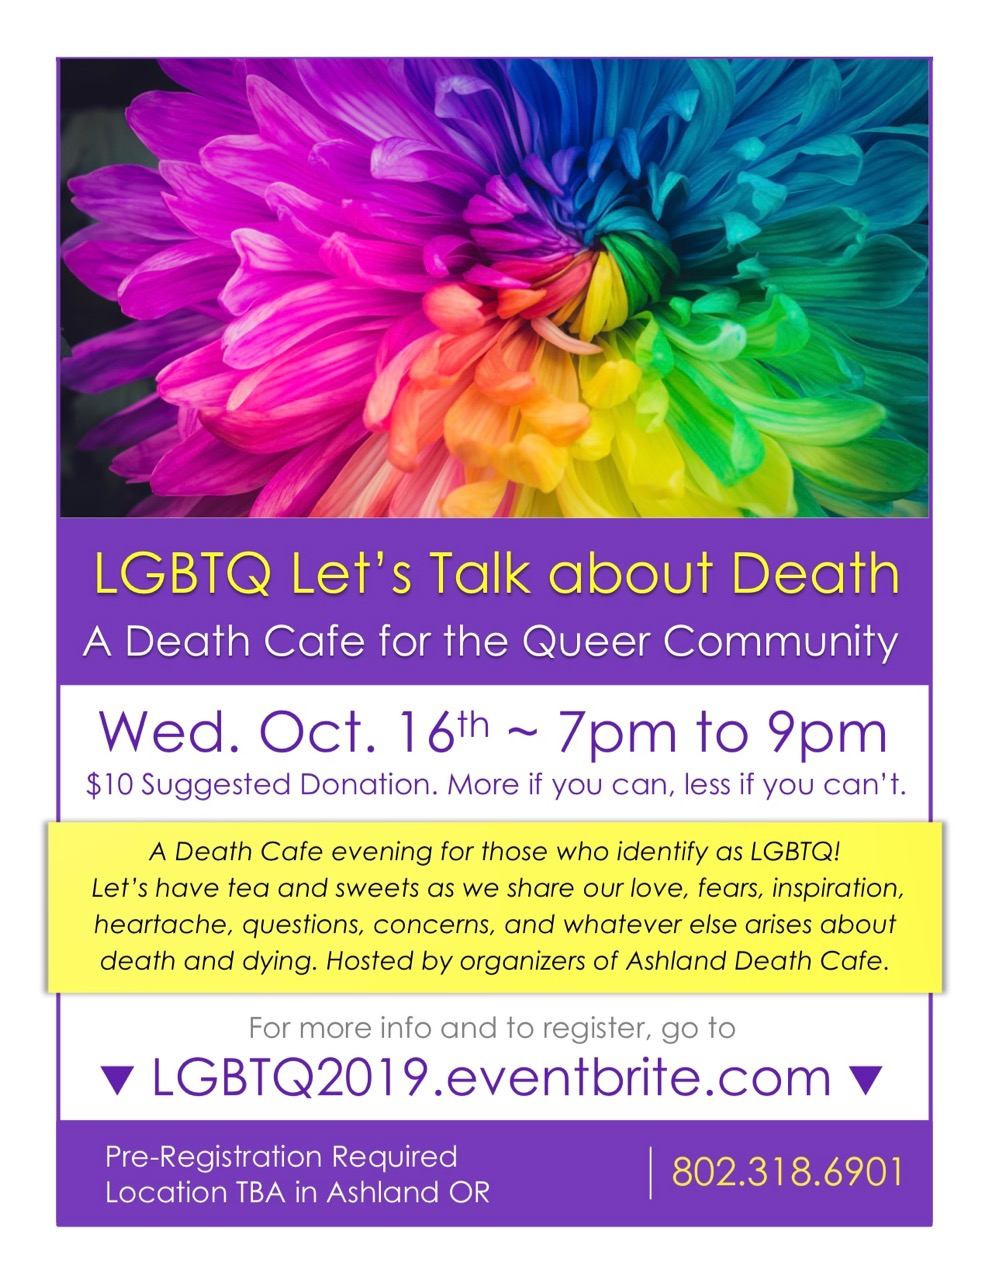 LGBTQ FINAL Death Cafe Ashland 2019